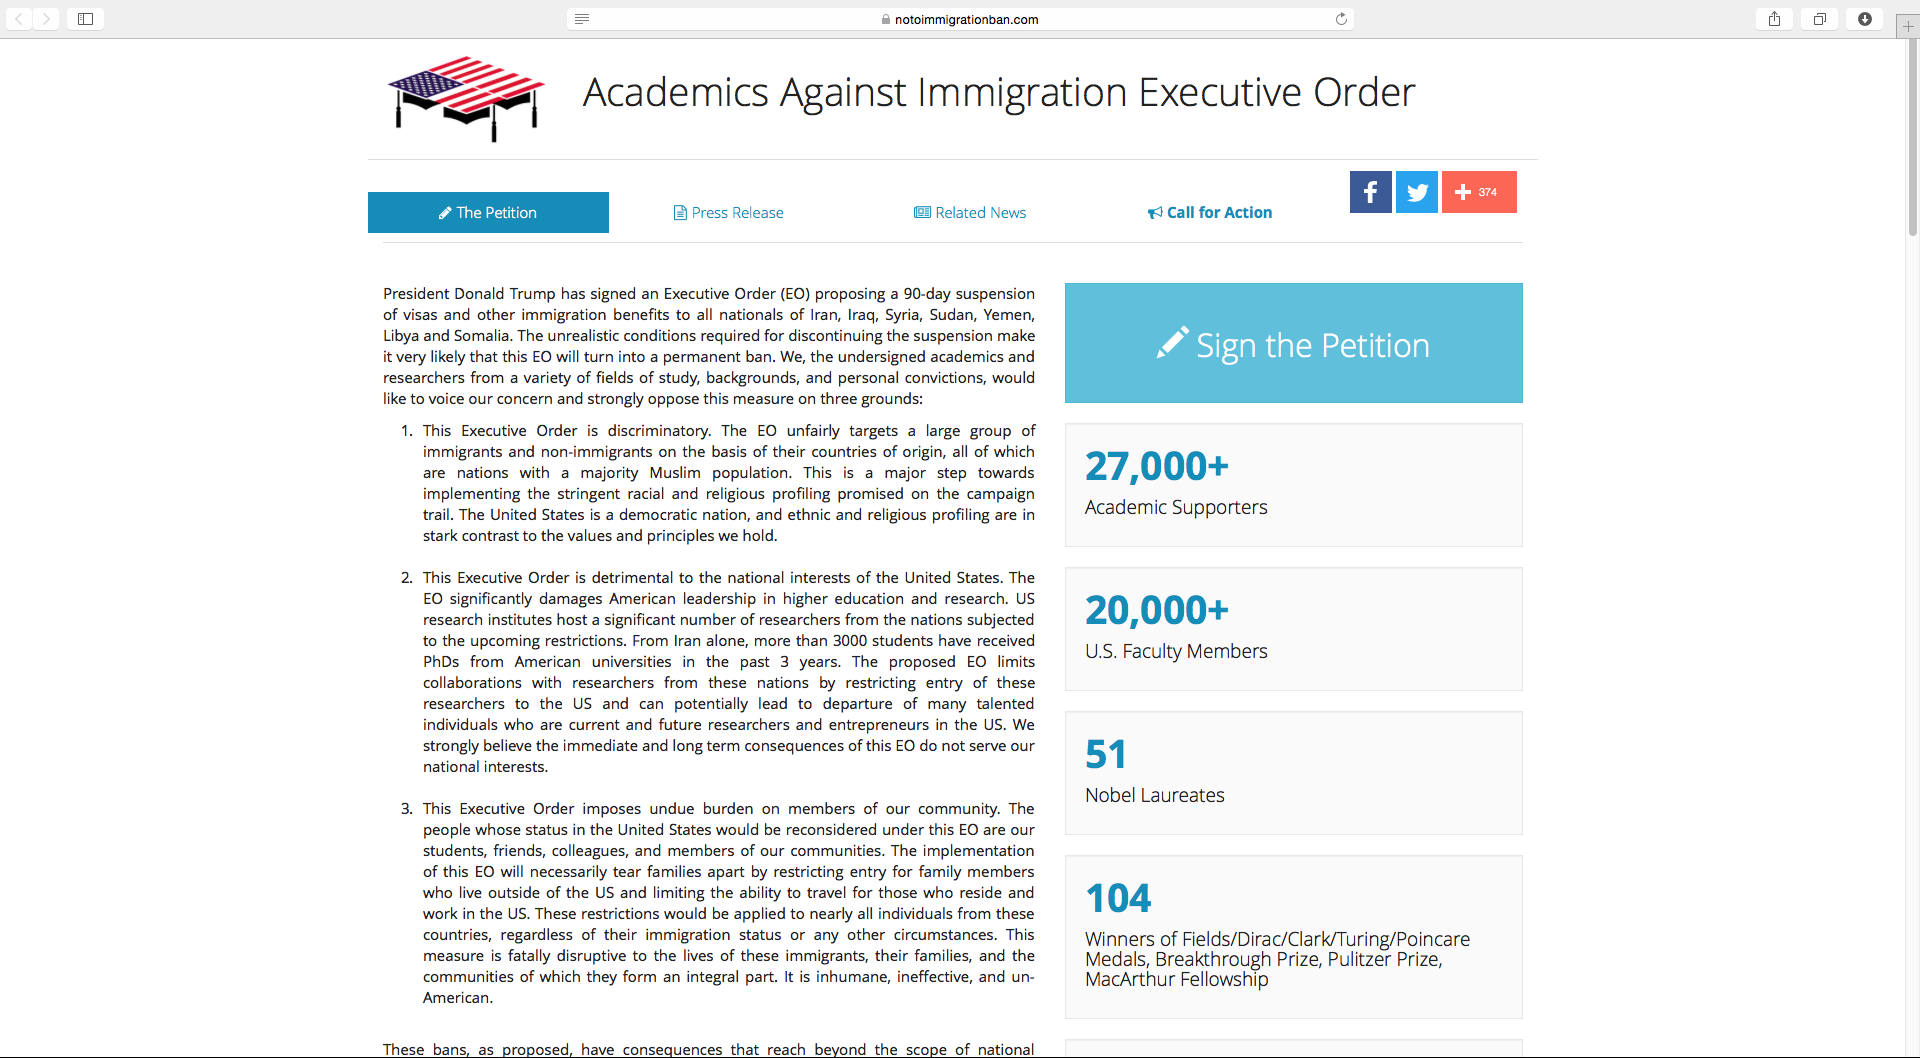 Over 27,000 academics signed the petition. (SCREENSHOT TAKEN FROM NOTOIMMIGRATIONBAN.COM)